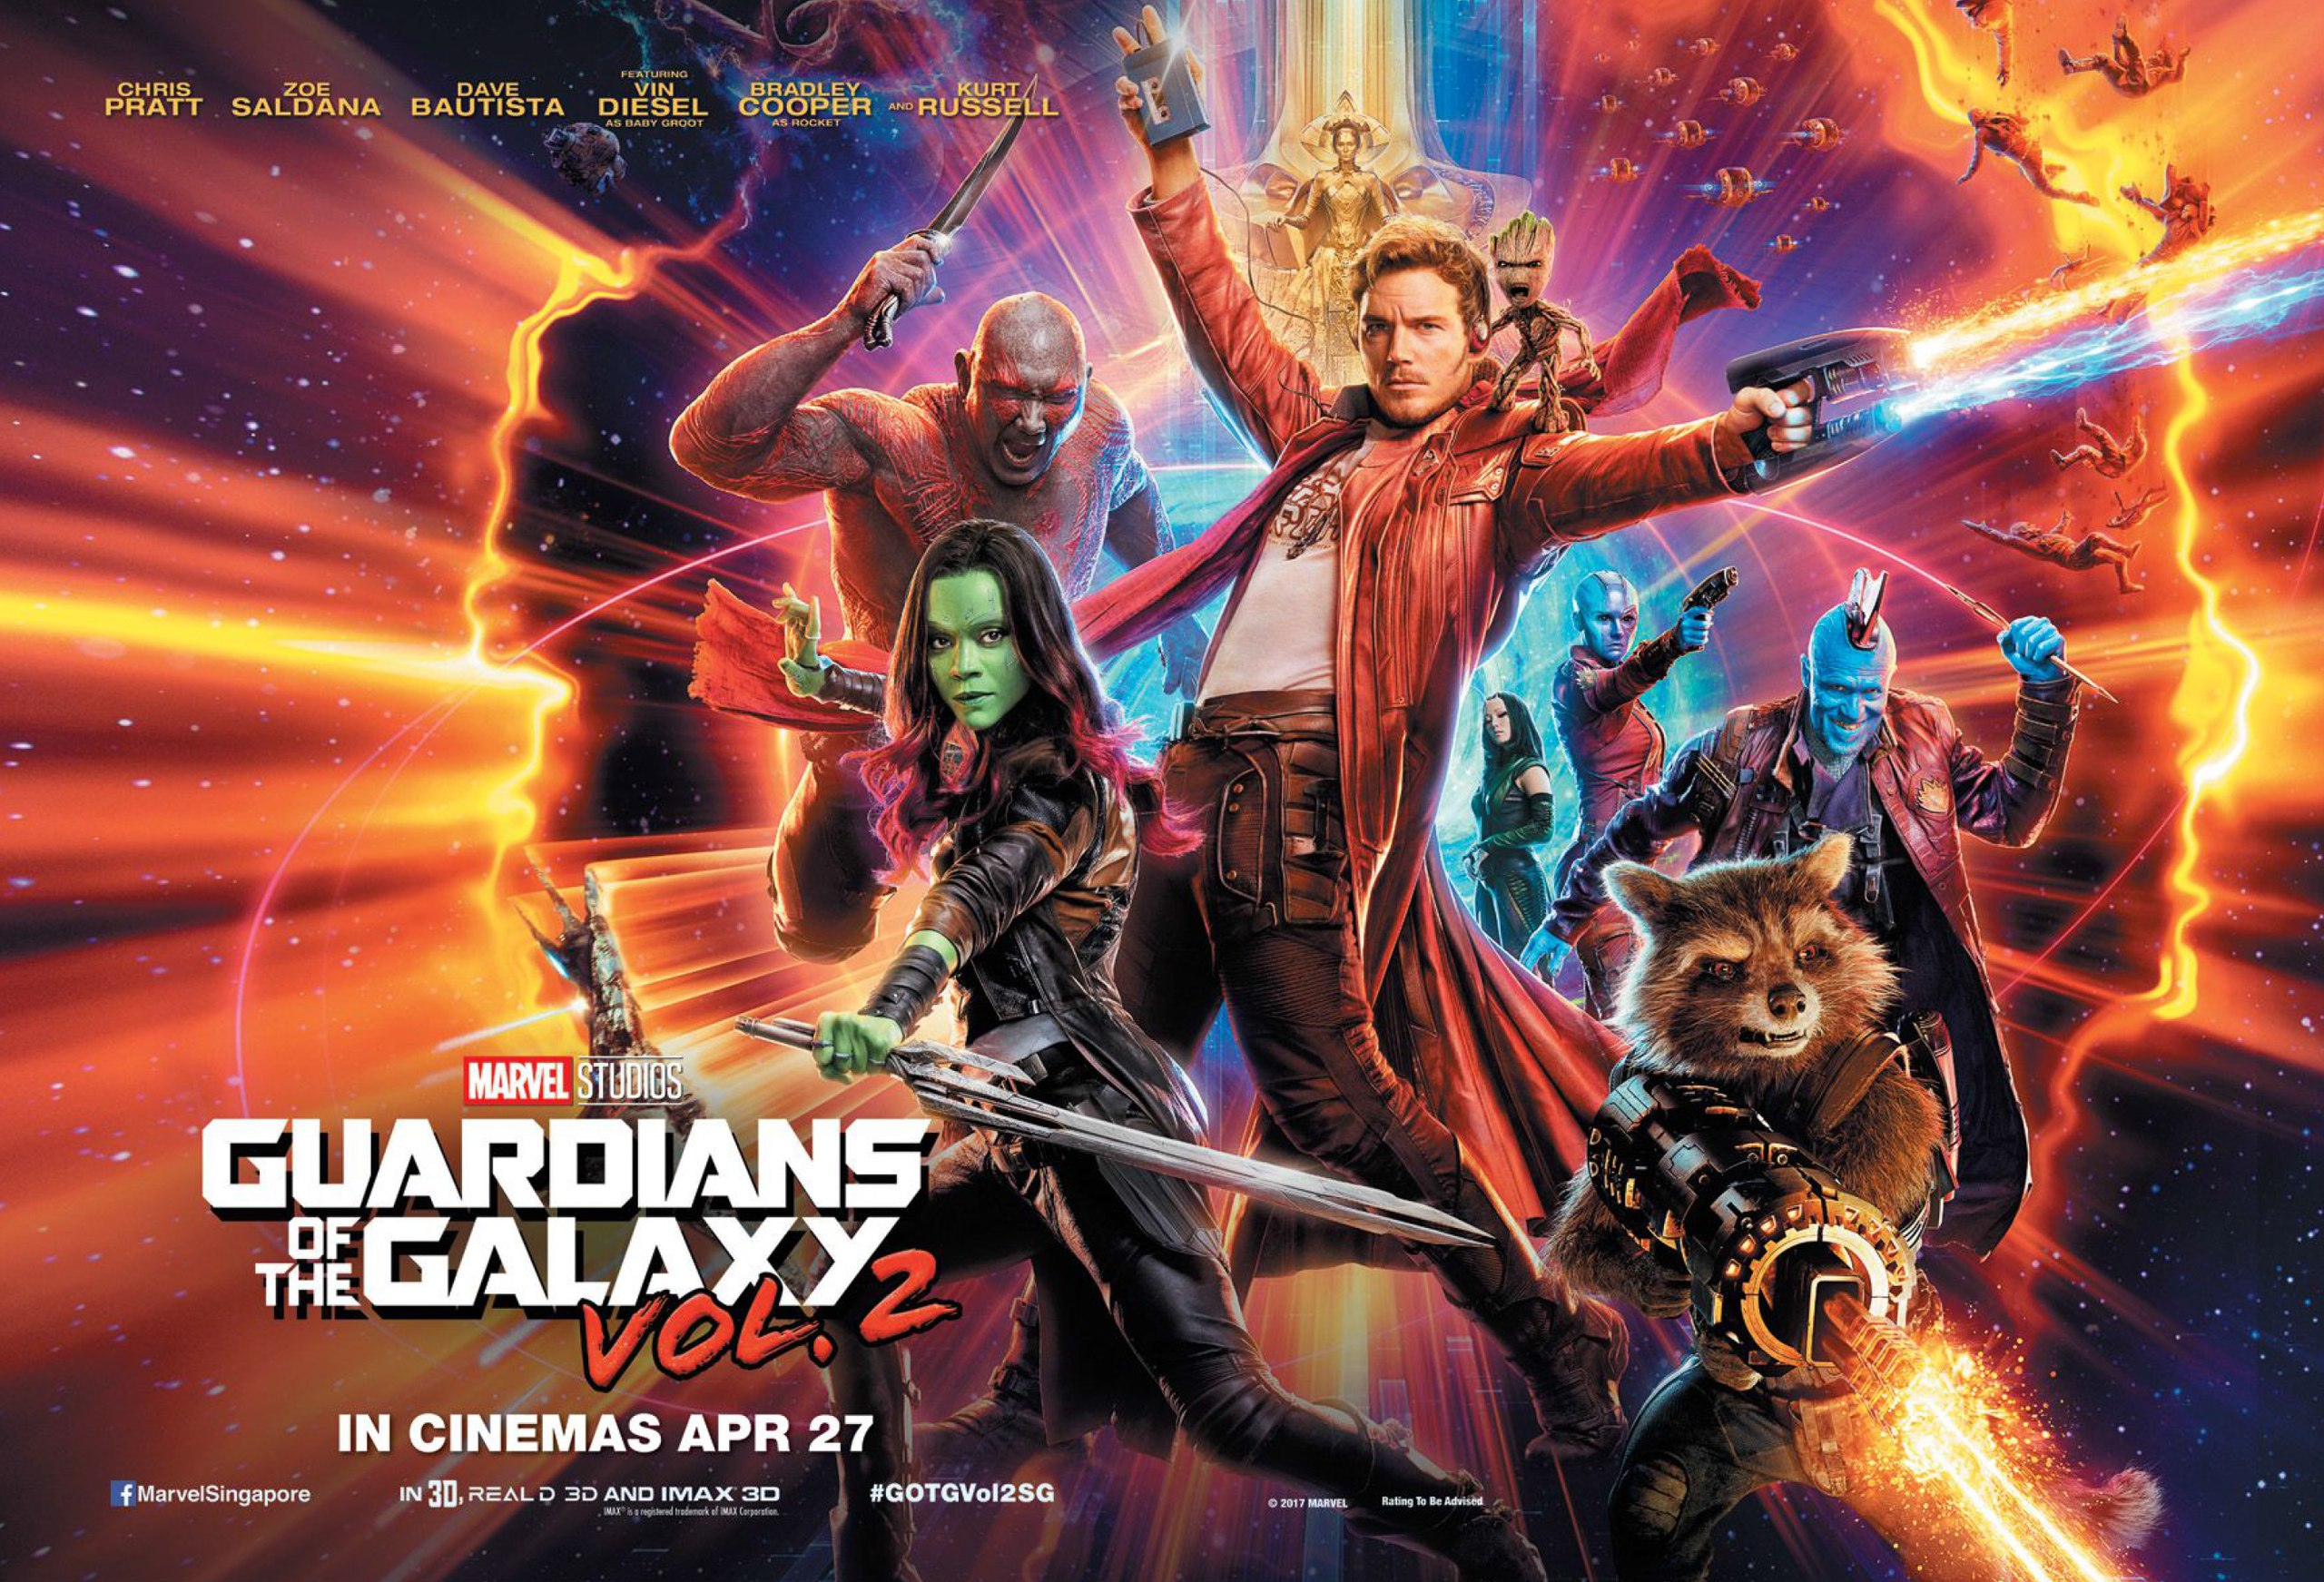 Guardians of the Galaxy Vol 2 film review post image